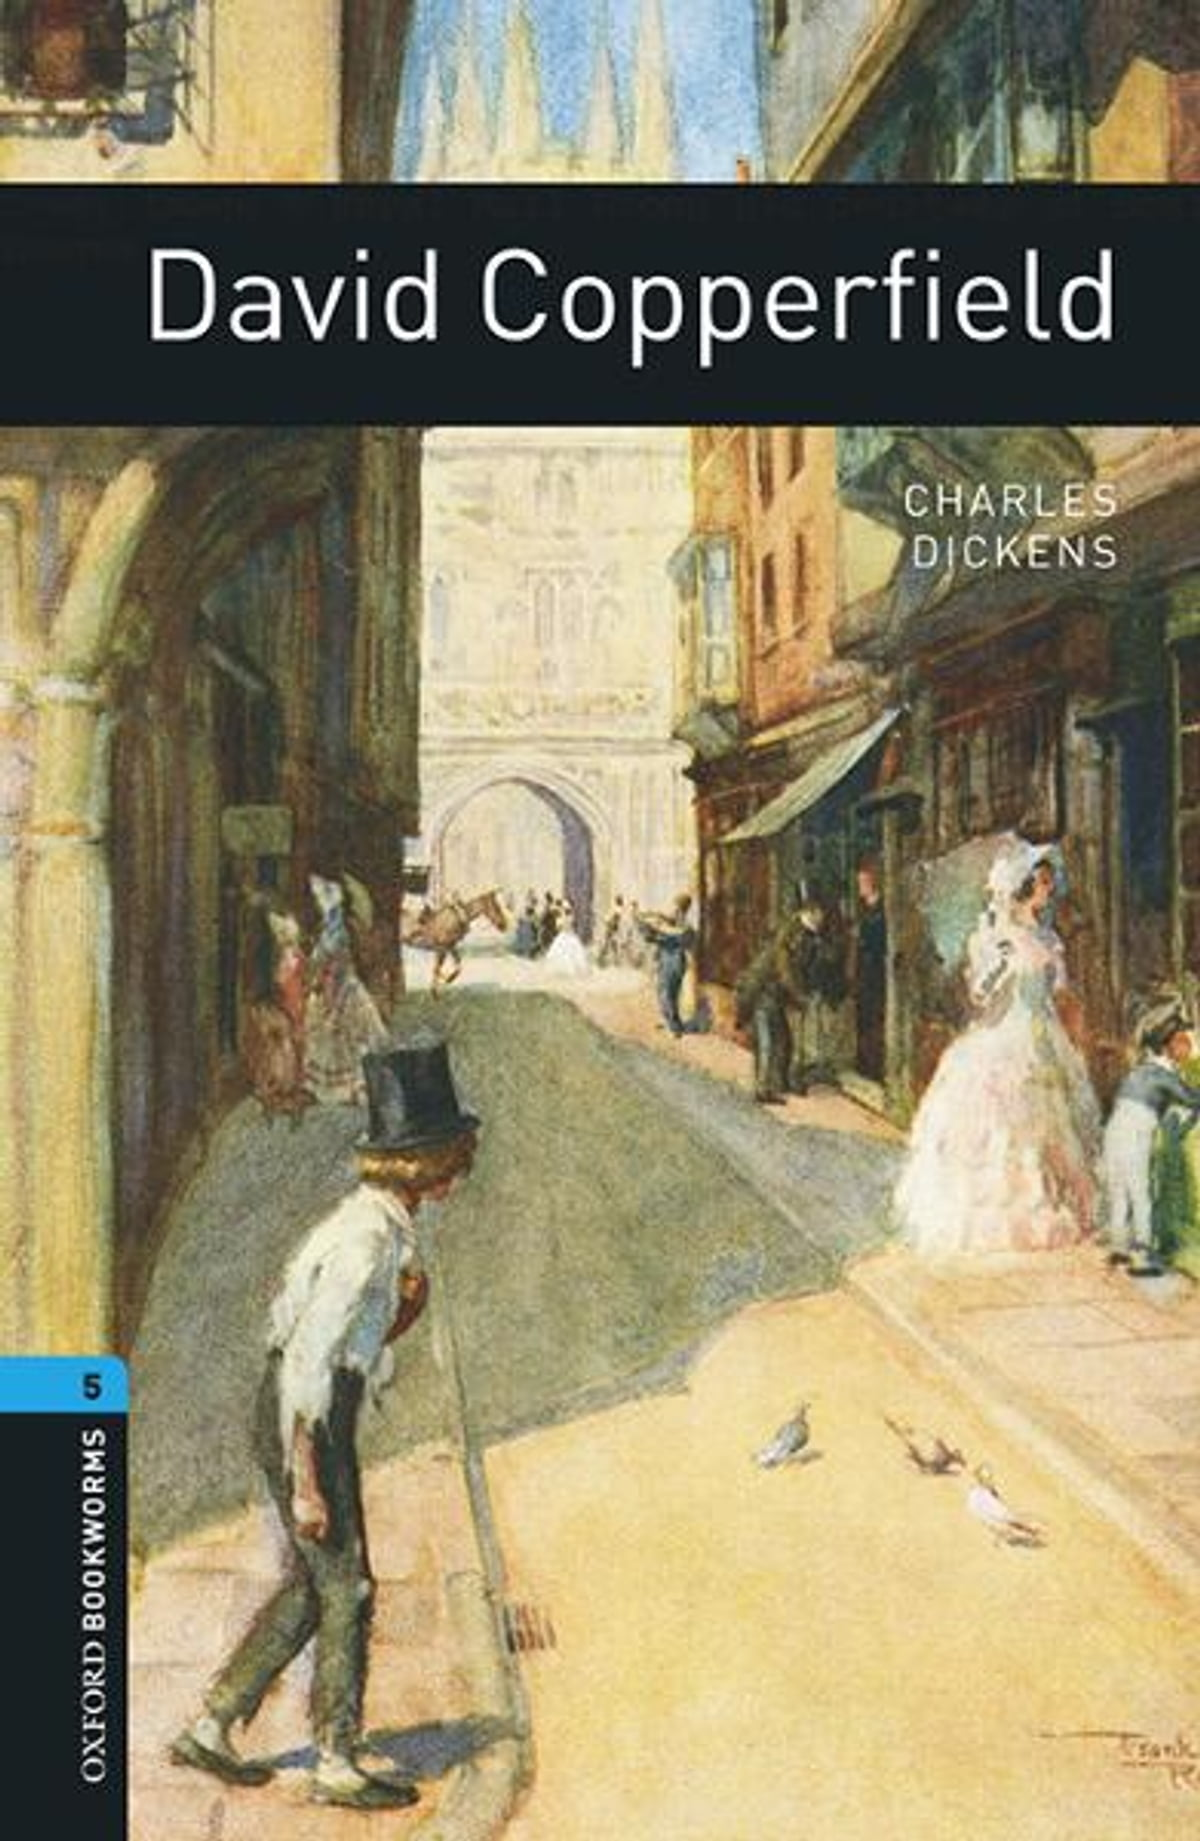 David Copperfield Book